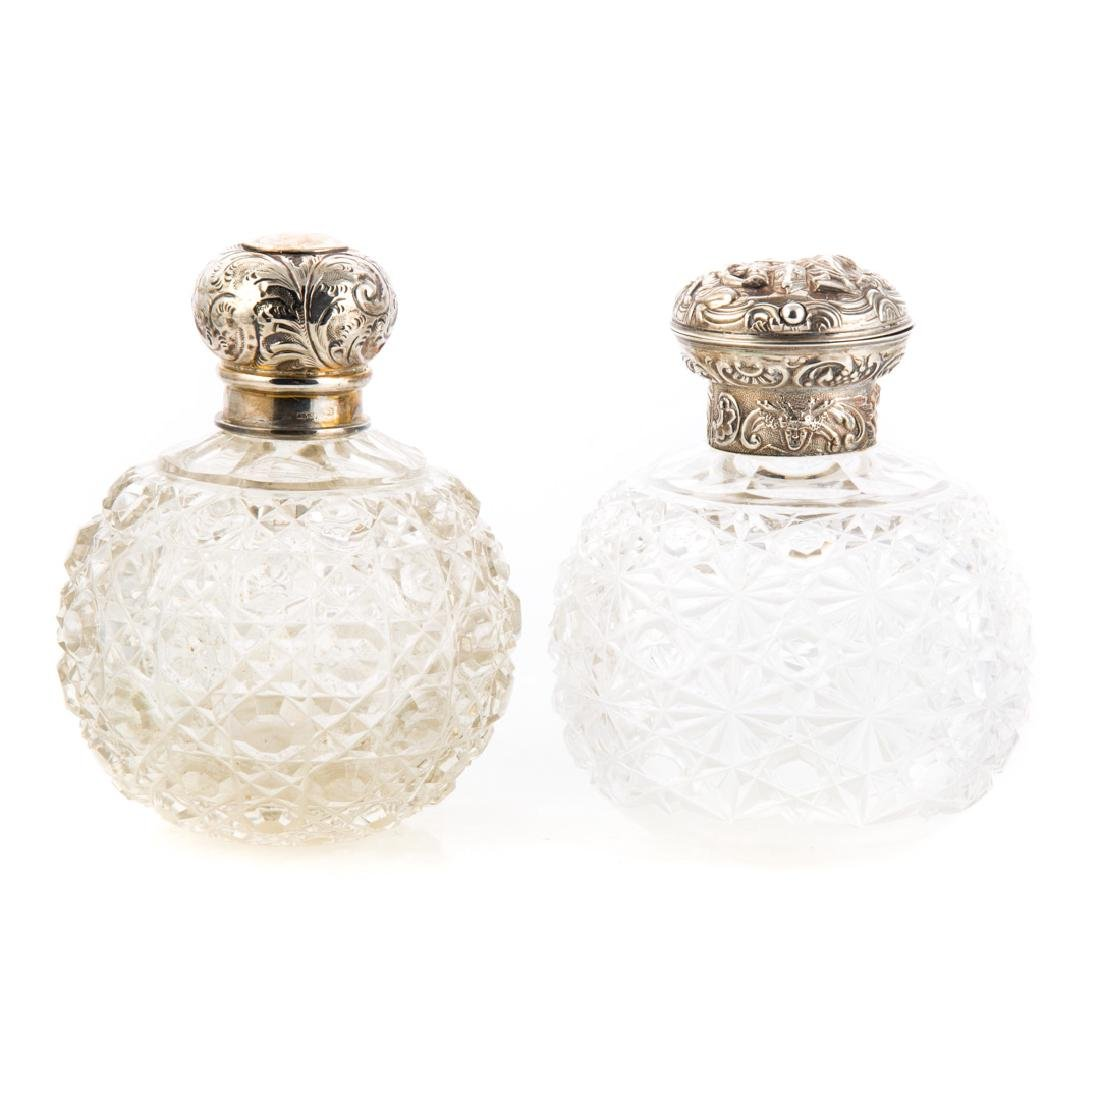 Two Continental cut glass & silver scent bottles